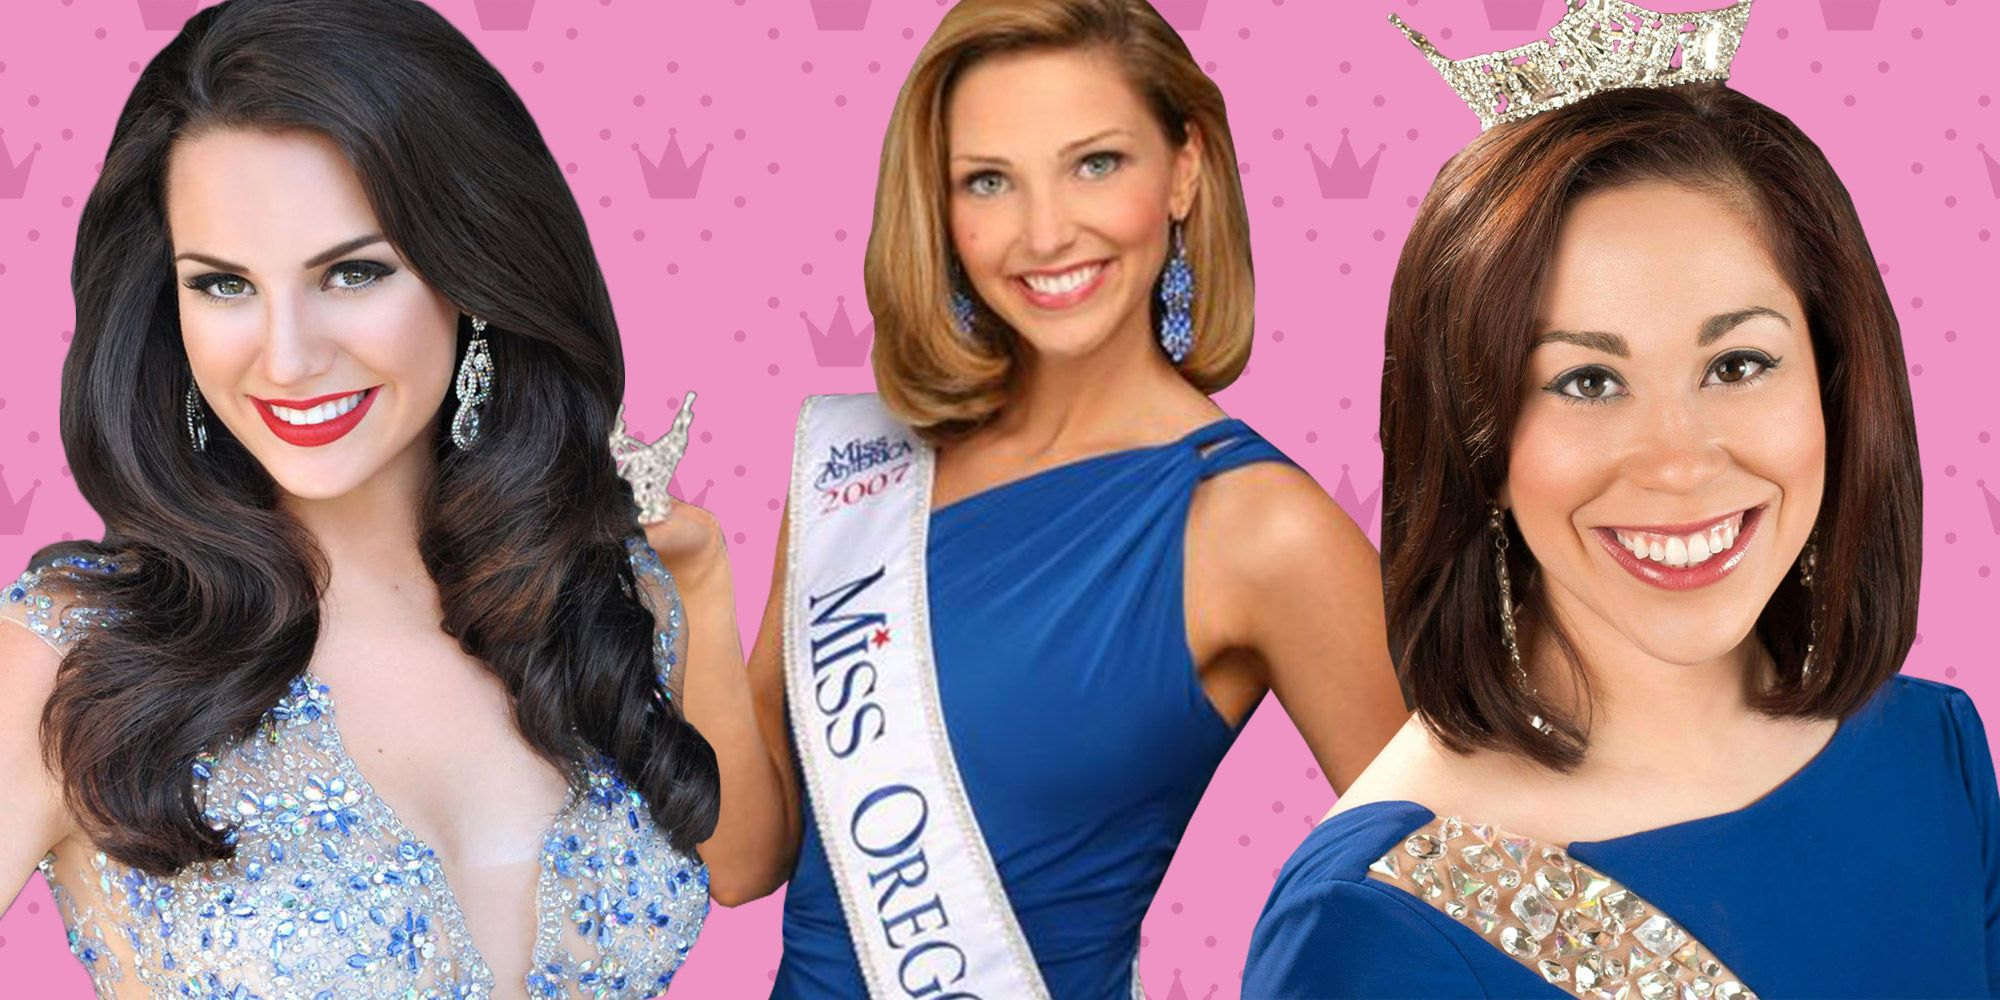 11 Beauty Secrets From Real Pageant Queens - Pageant Queen Makeup